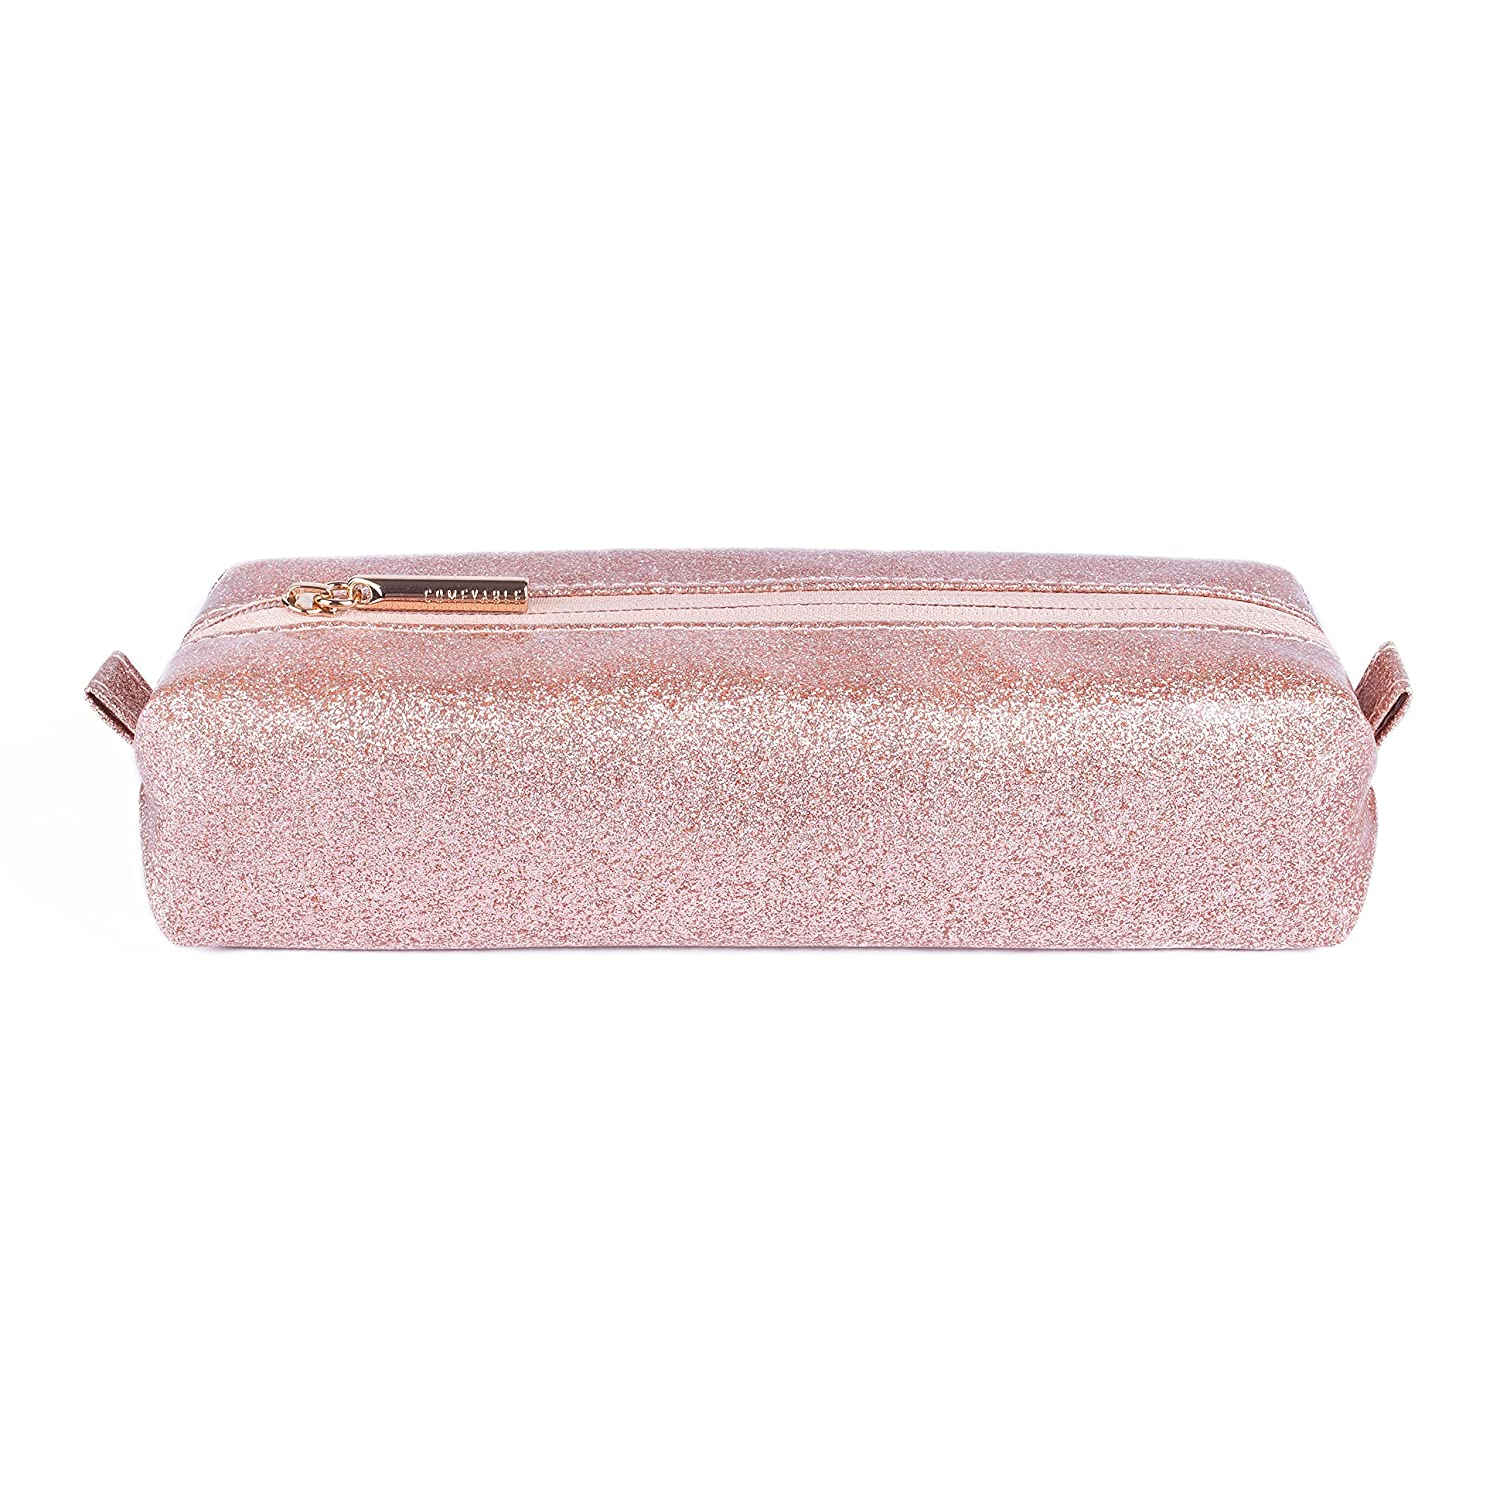 91a8bea6dfb8 Comfyable Small Cosmetic Bag for Purse Pencil Case Rectangular Makeup Bag  Waterproof Glitter...